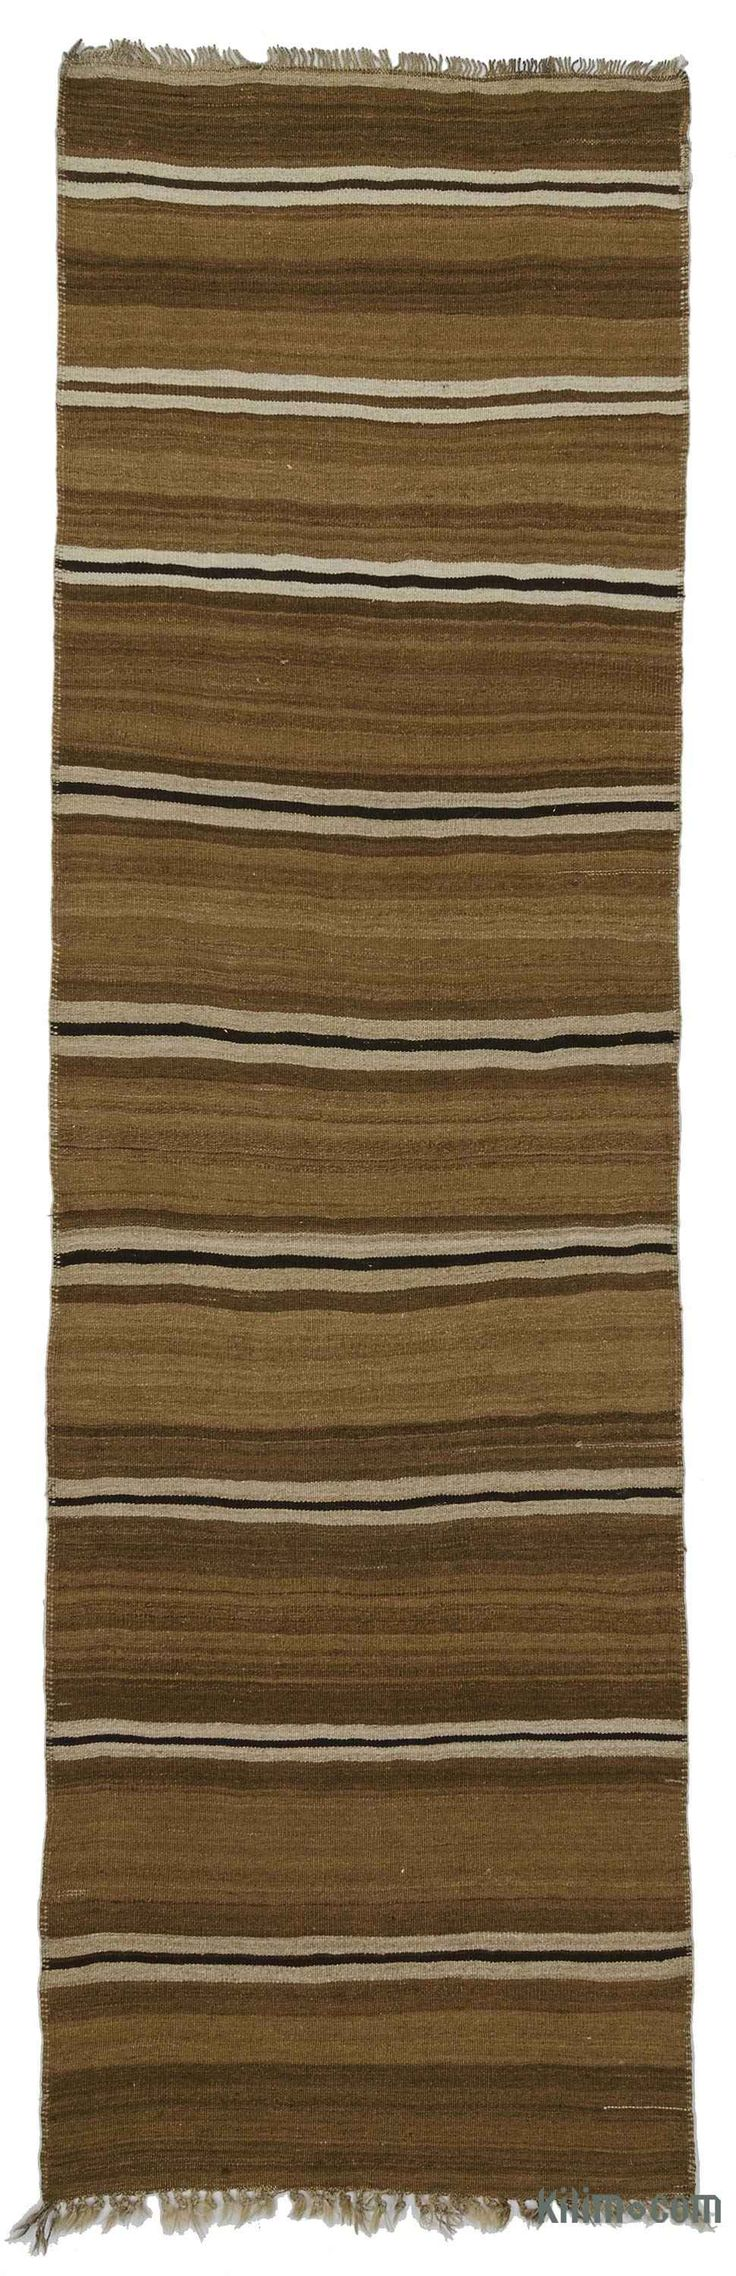 Vintage kilim runner rug handwoven in Turkey in 1960's. This tribal striped rug is in very good condition. It is perfect for both bohemian and contemporary settings.